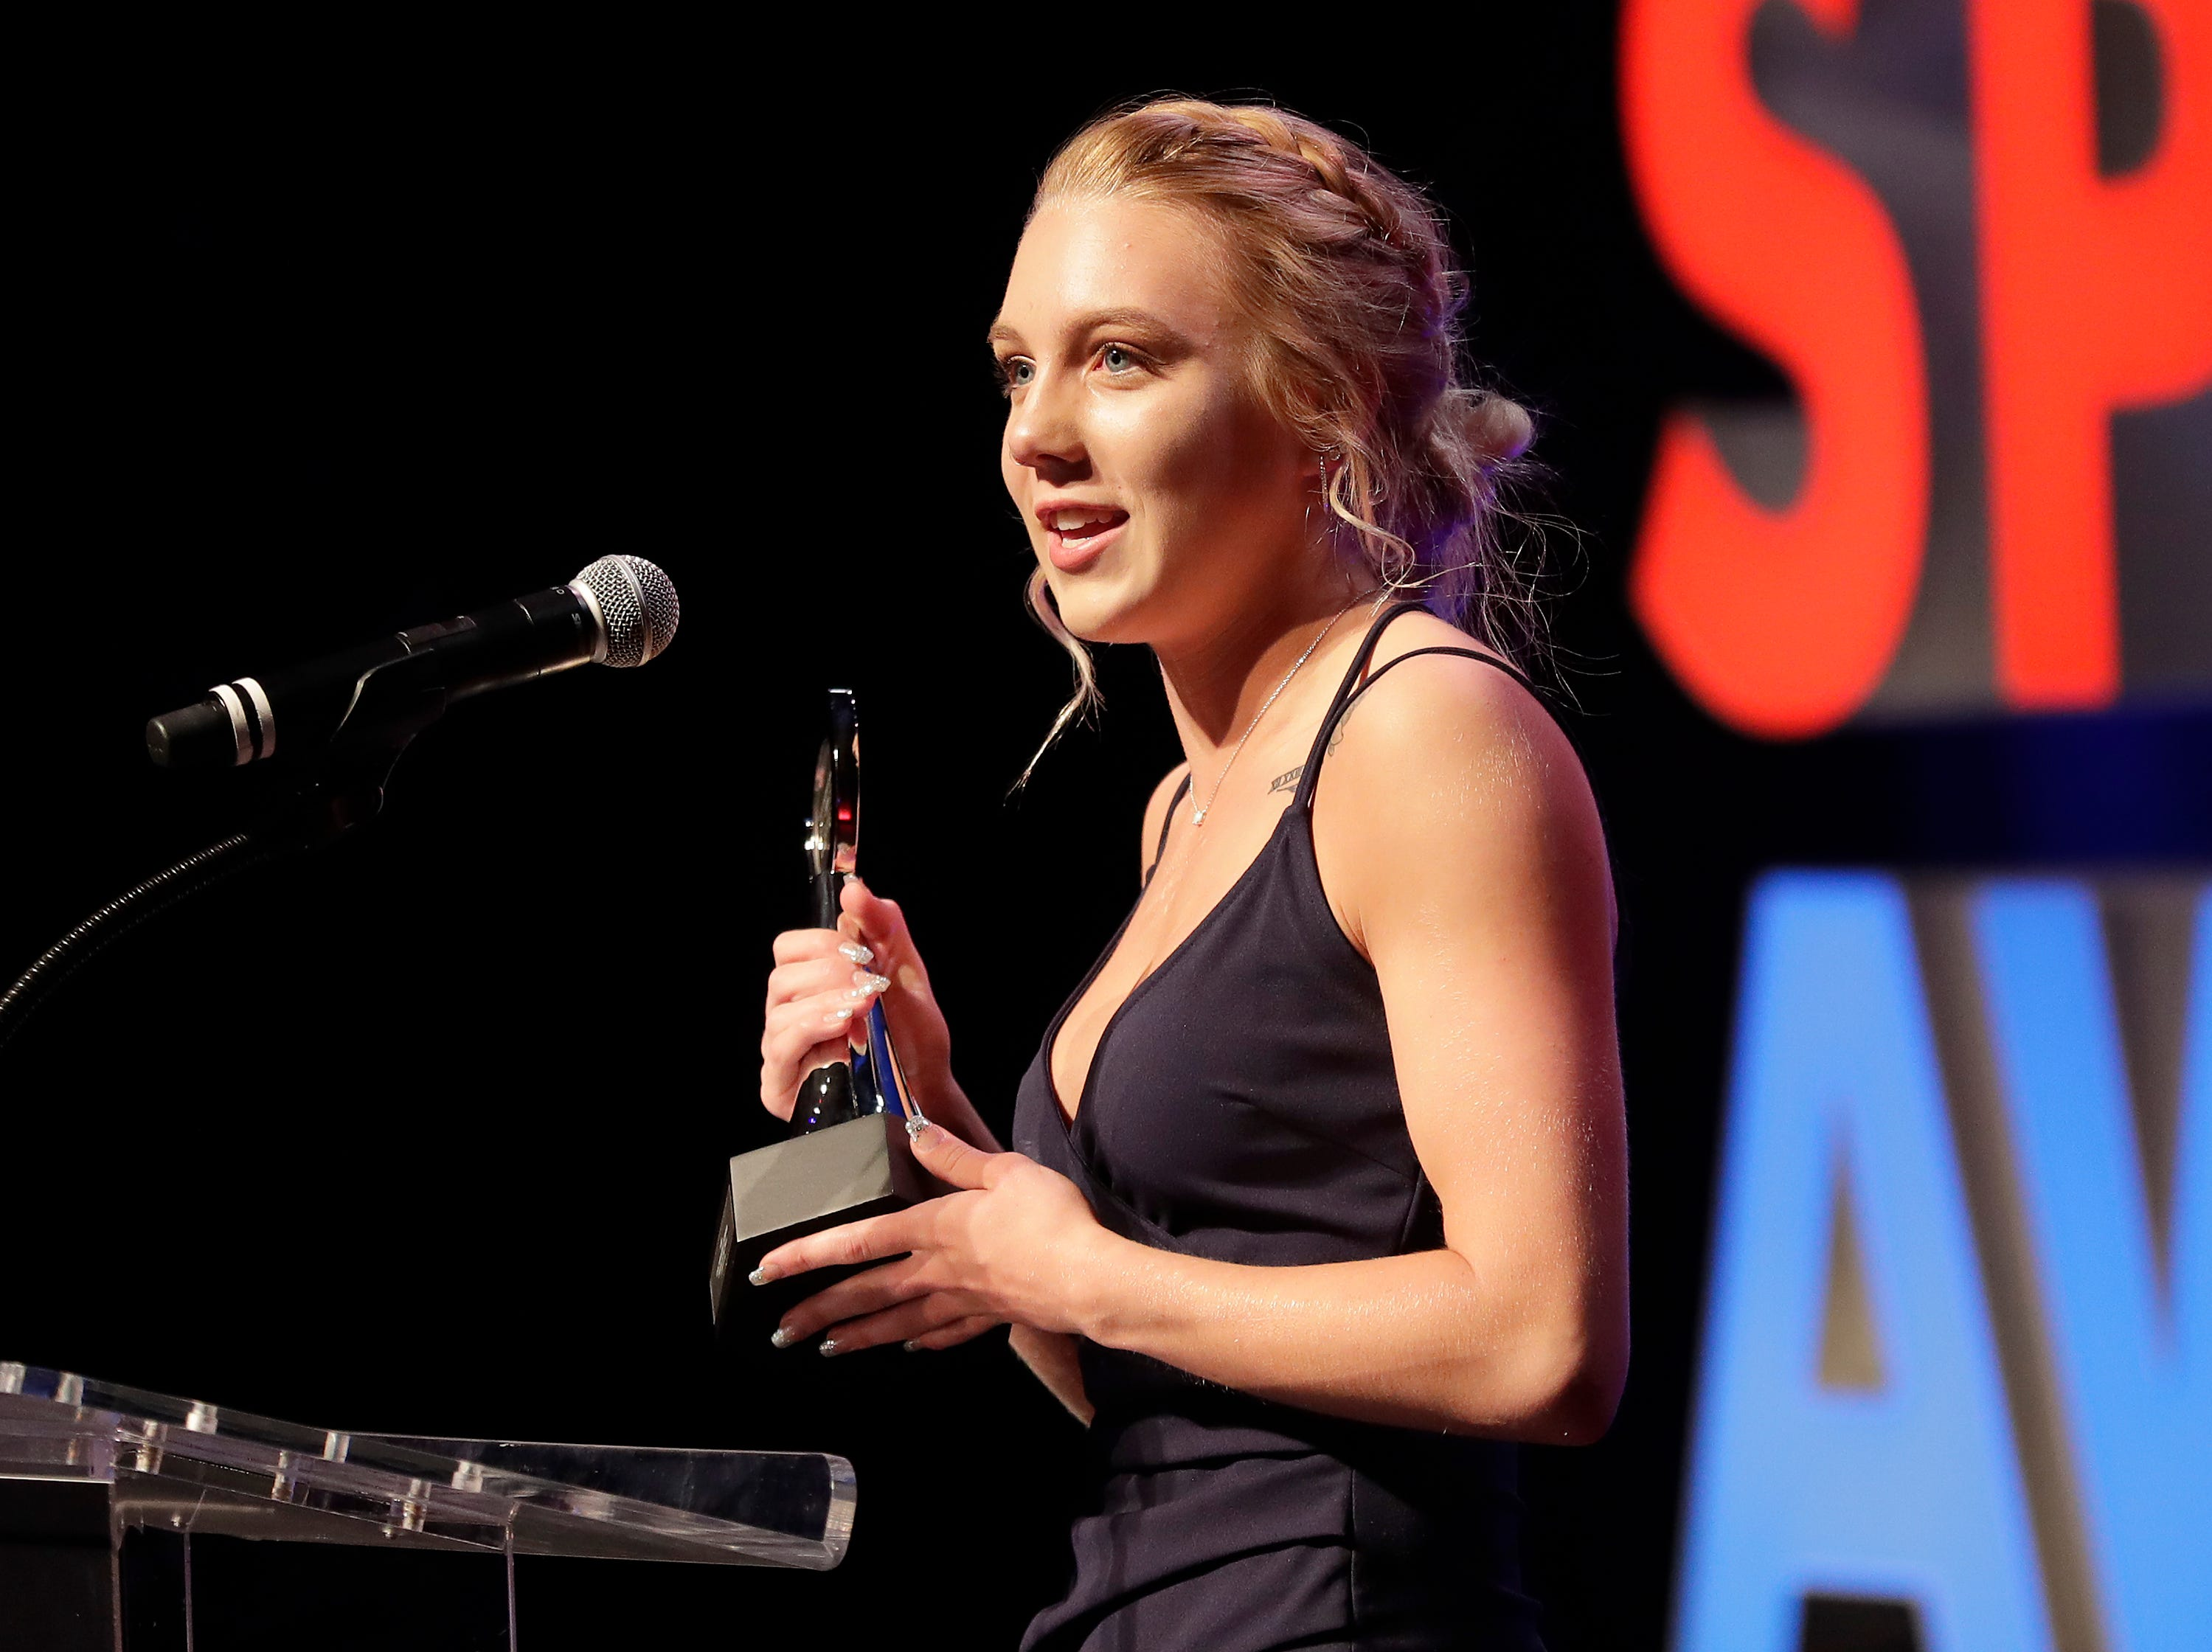 Girls Swimming and Diving Athlete of the Year, Neenah's Av Osero during the Wisconsin High School Sports Awards show at the Fox Cities Performing Arts Center on Wednesday, May 8, 2019, in Appleton, Wis. Olympic champion Michael Phelps was the guest speaker. The annual event was presented by USA TODAY NETWORK-Wisconsin.  Wm. Glasheen/USA TODAY NETWORK-Wisconsin.